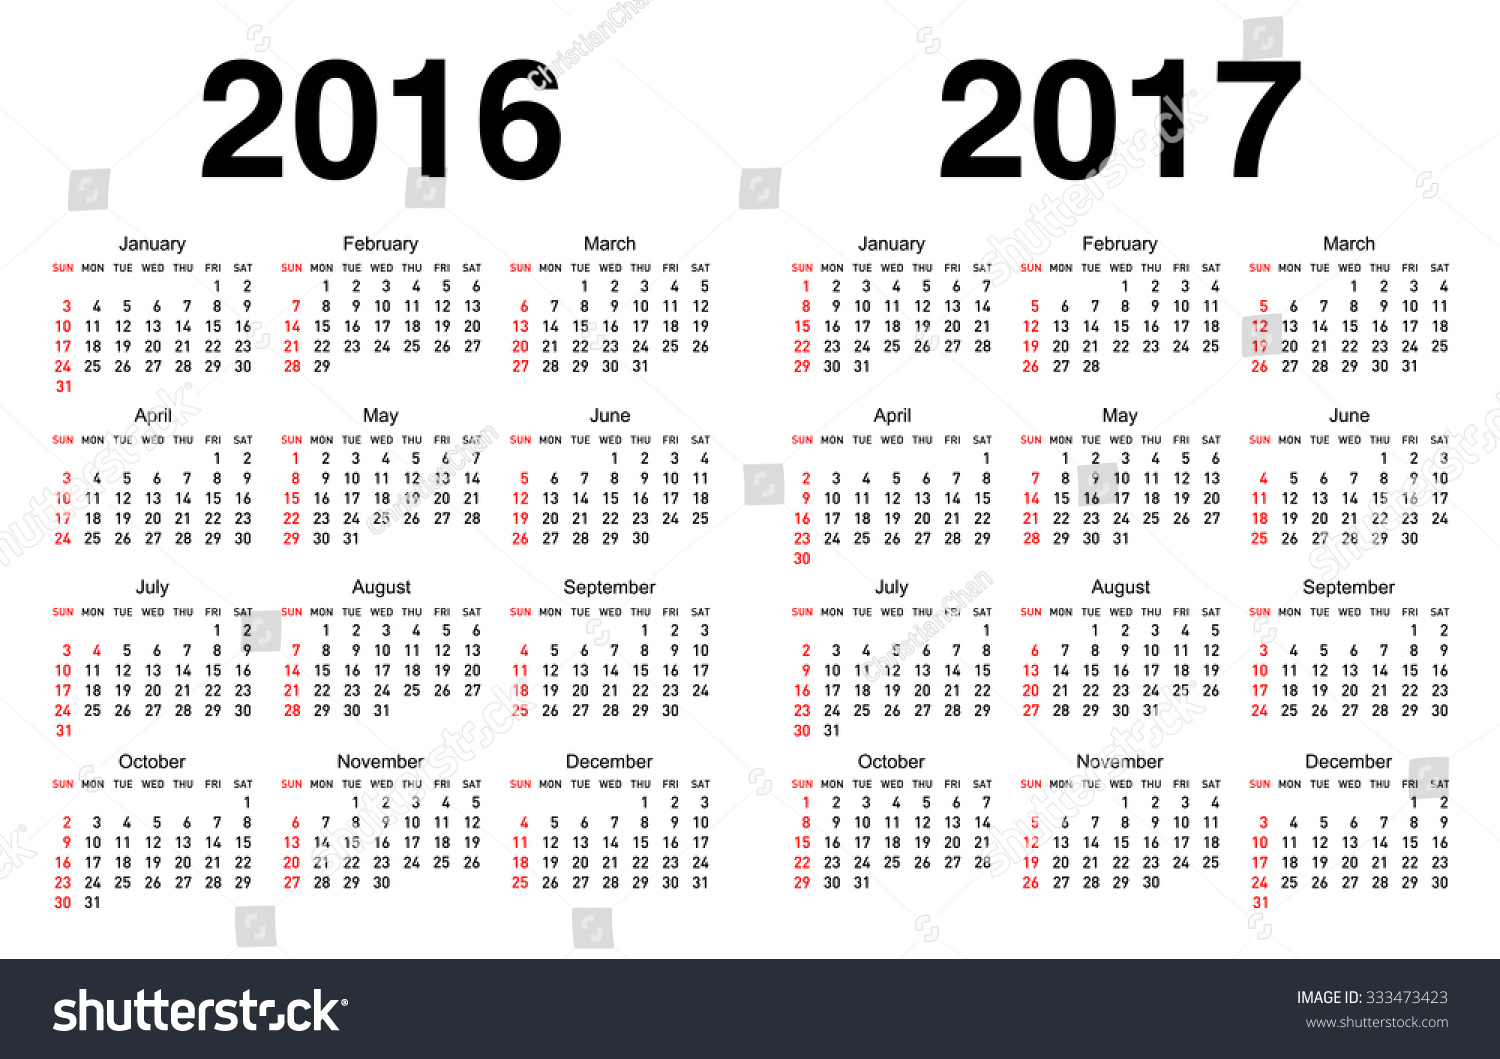 dating tips for introverts people 2017 calendar template